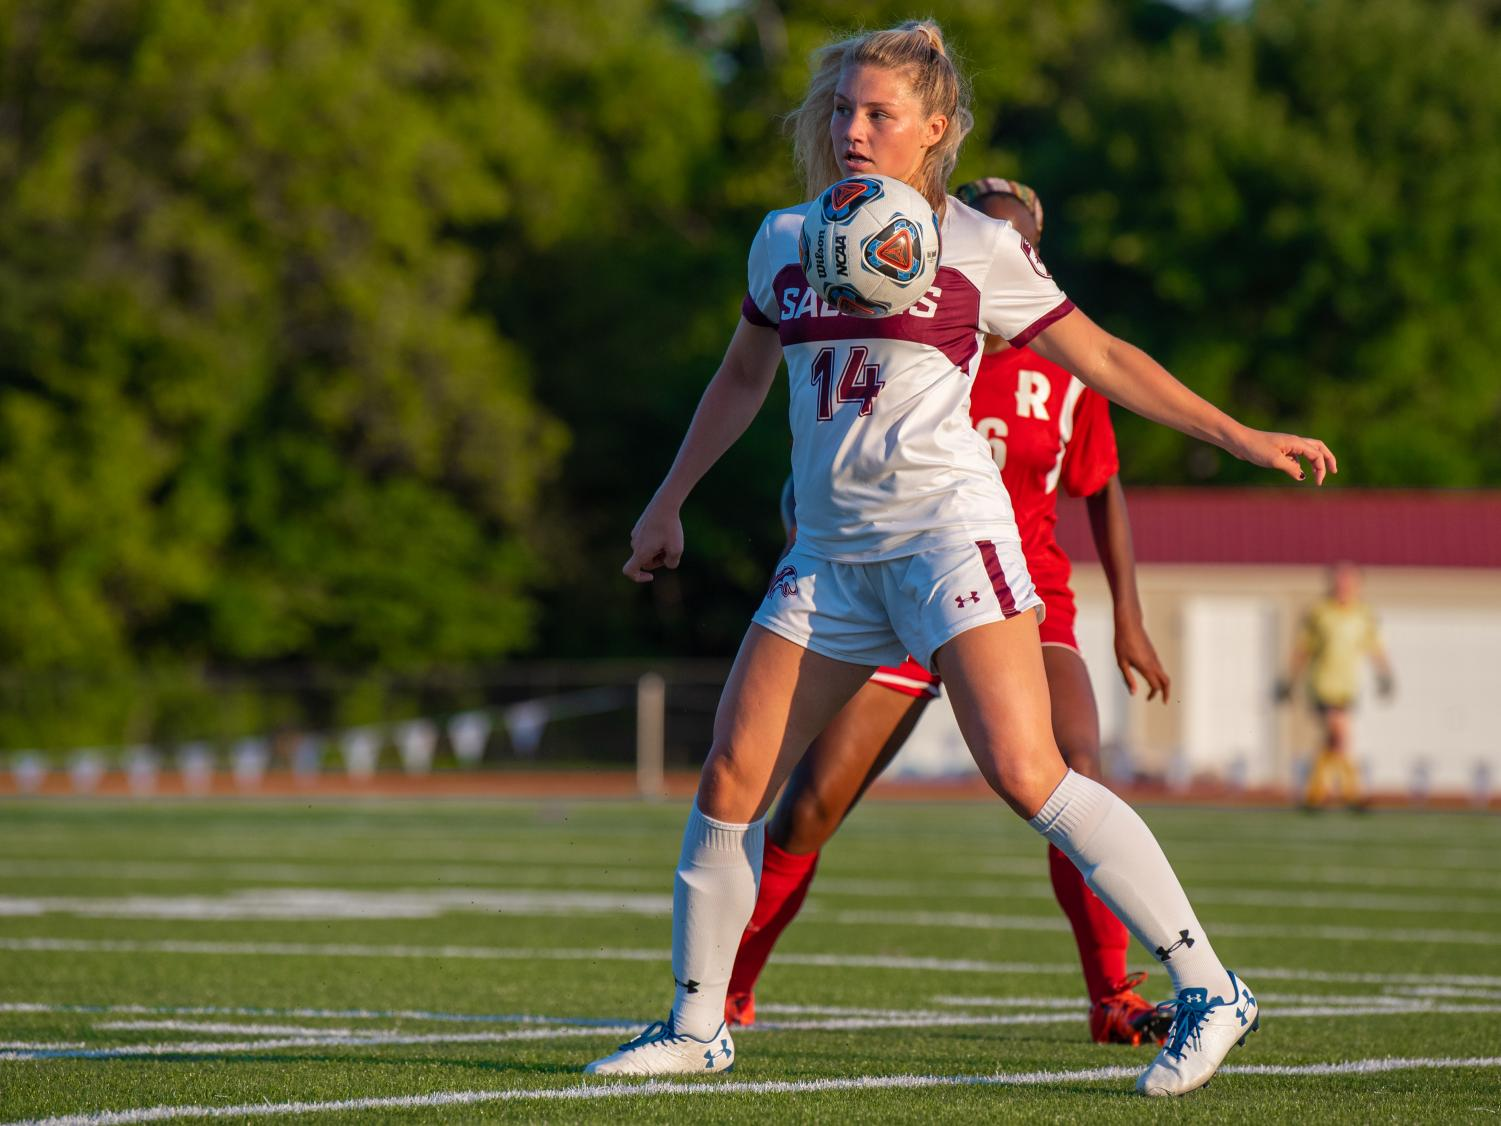 Saluki+freshman+Kaitlin+DuCharme+defends+the+ball+on+Tuesday%2C+Aug.+27%2C+2019+during+the+Salukis%27+1-0+win+against+the+Rose-Hulman+Fightin%27+Engineers+at+the+Lew+Hartzog+Track+%26+Field+Complex.